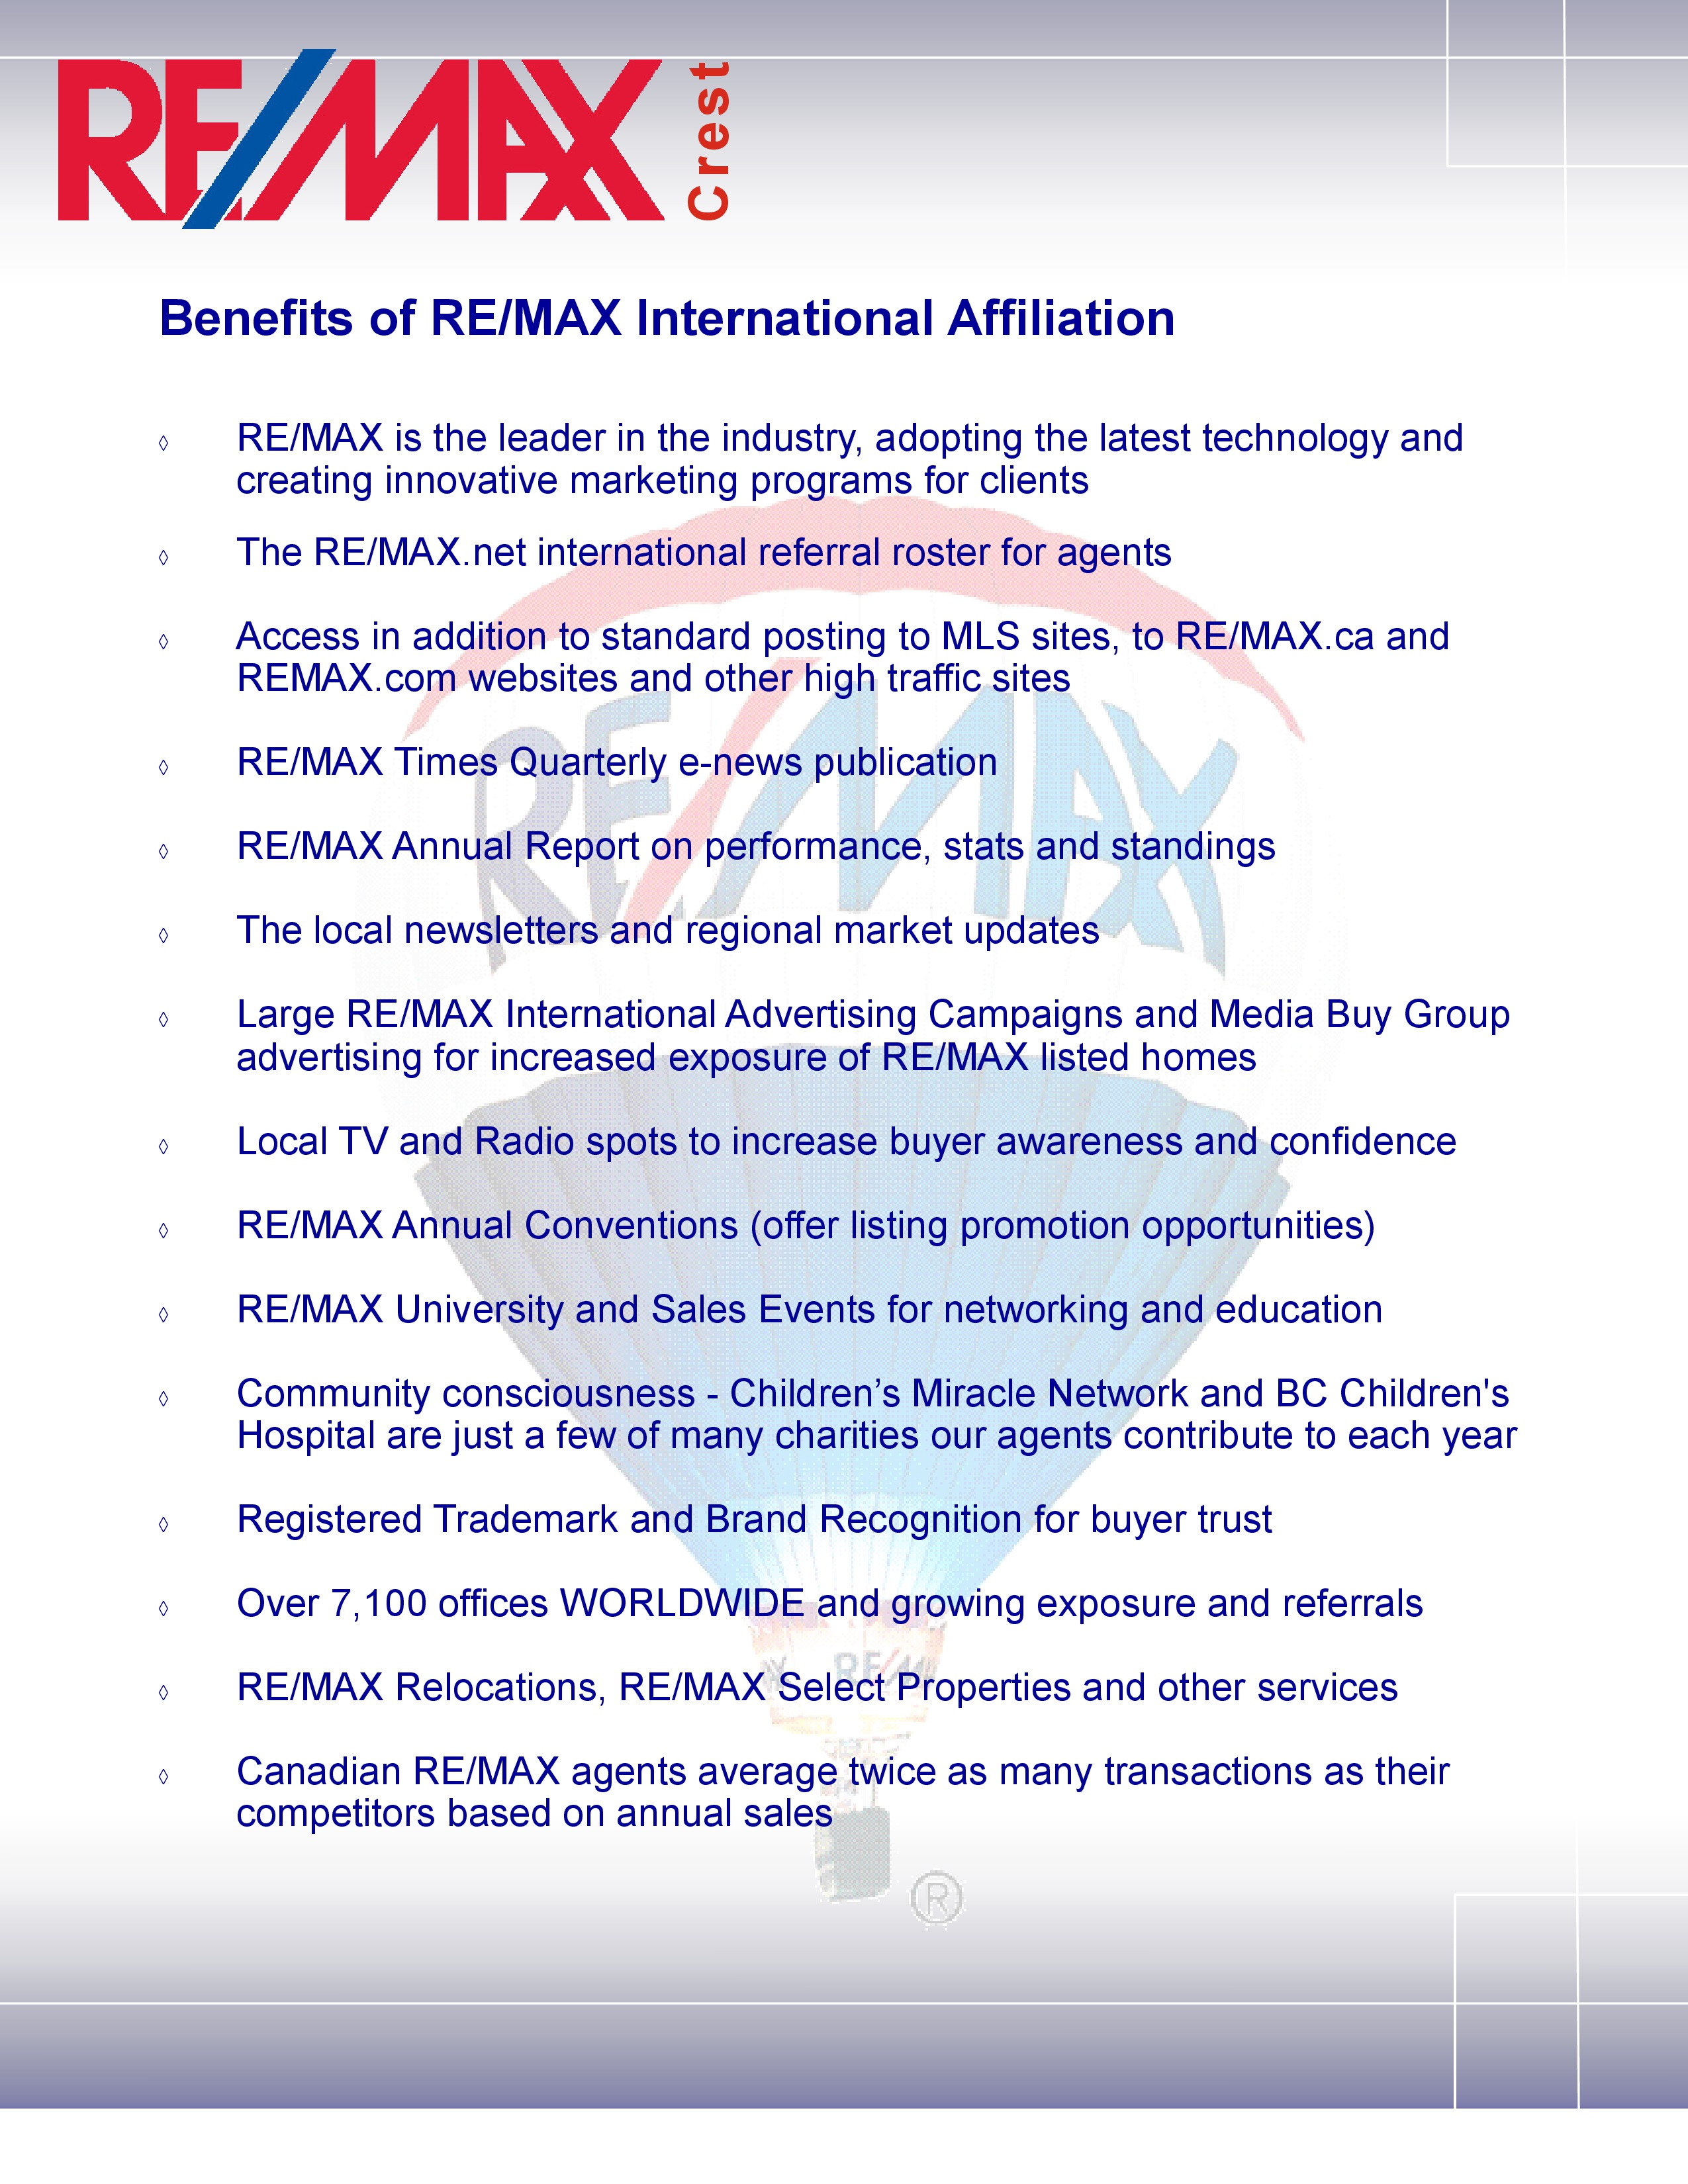 Why-REMAX?